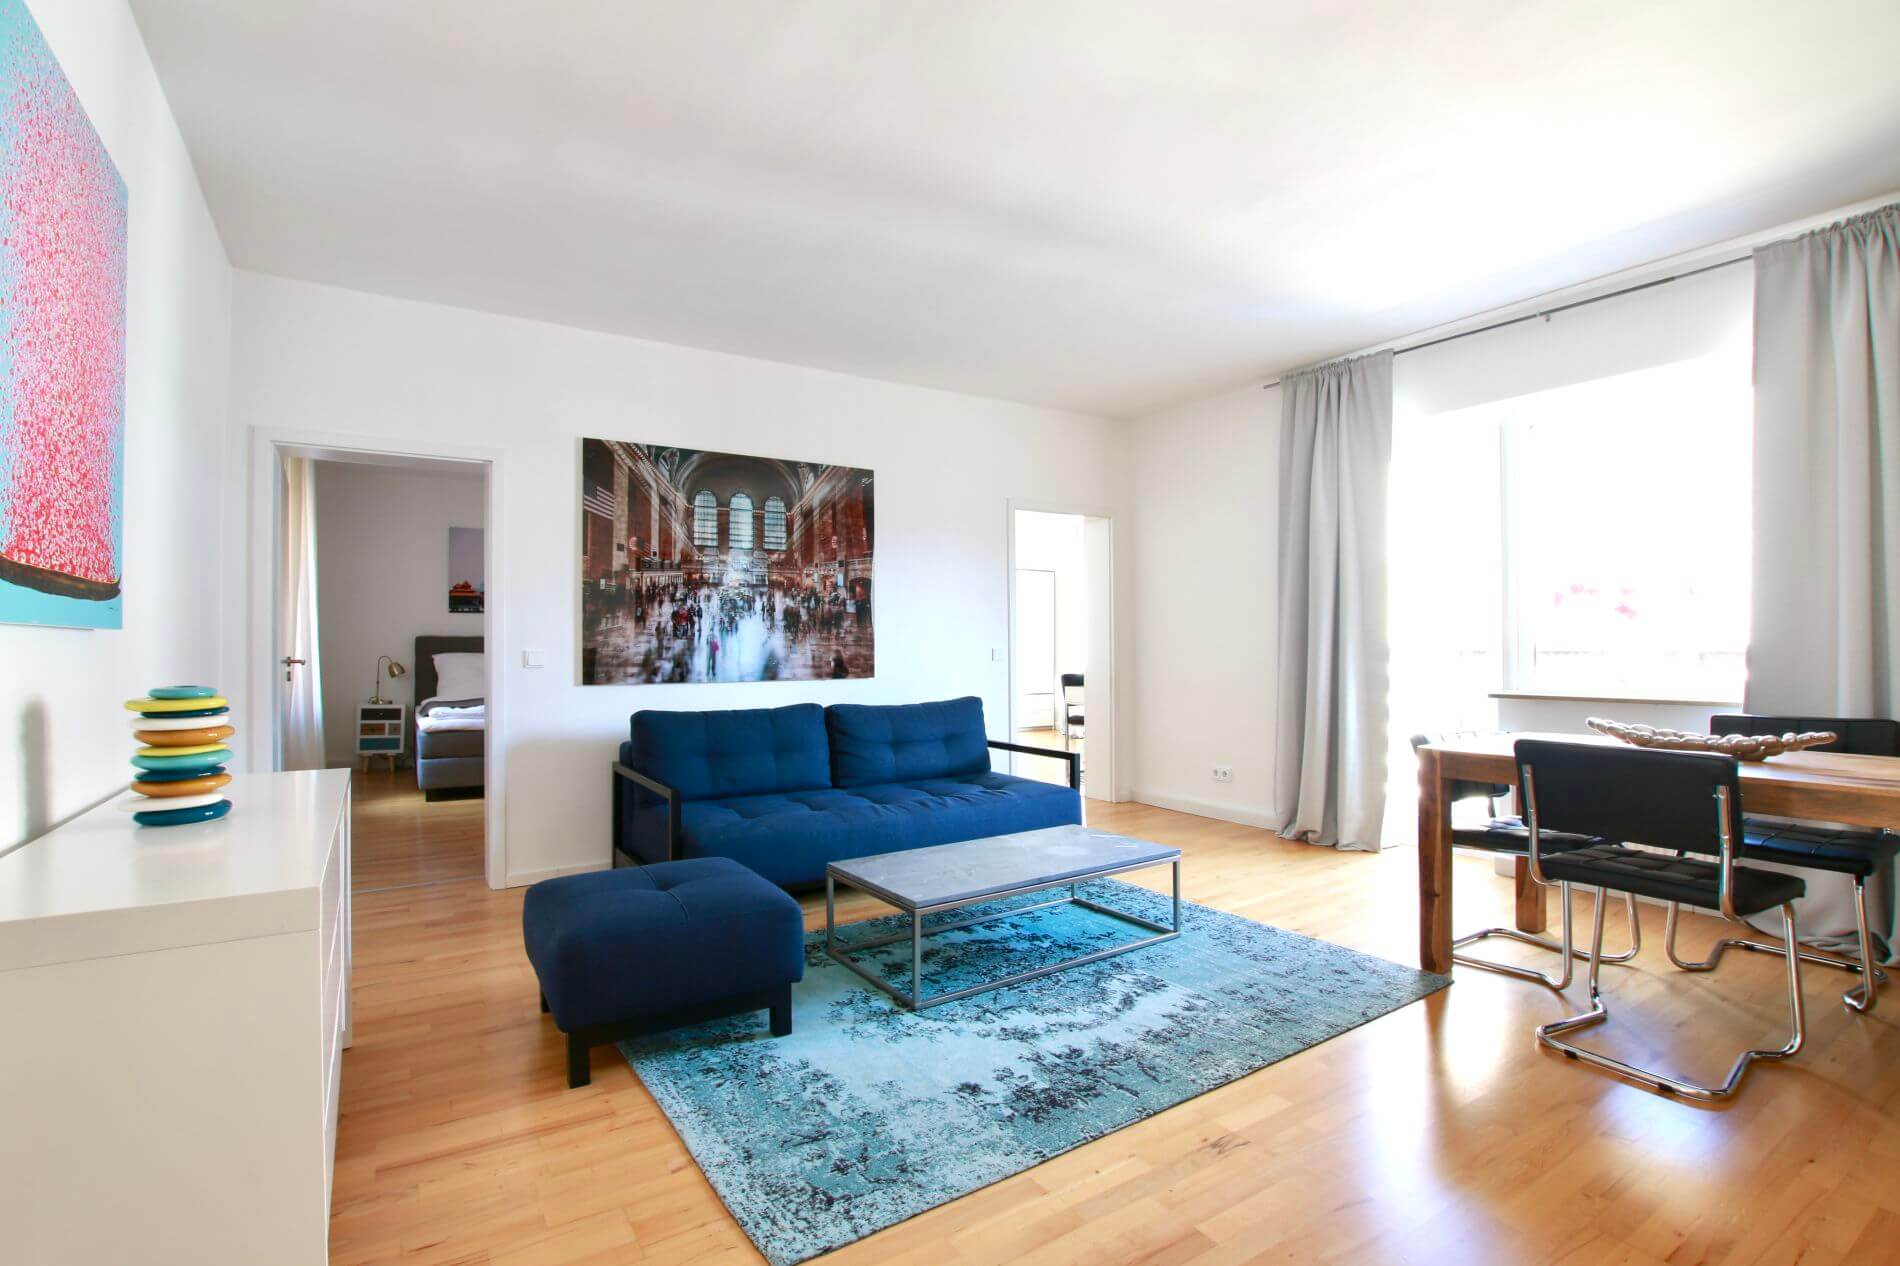 2 bedroom apartment for rent in Cologne